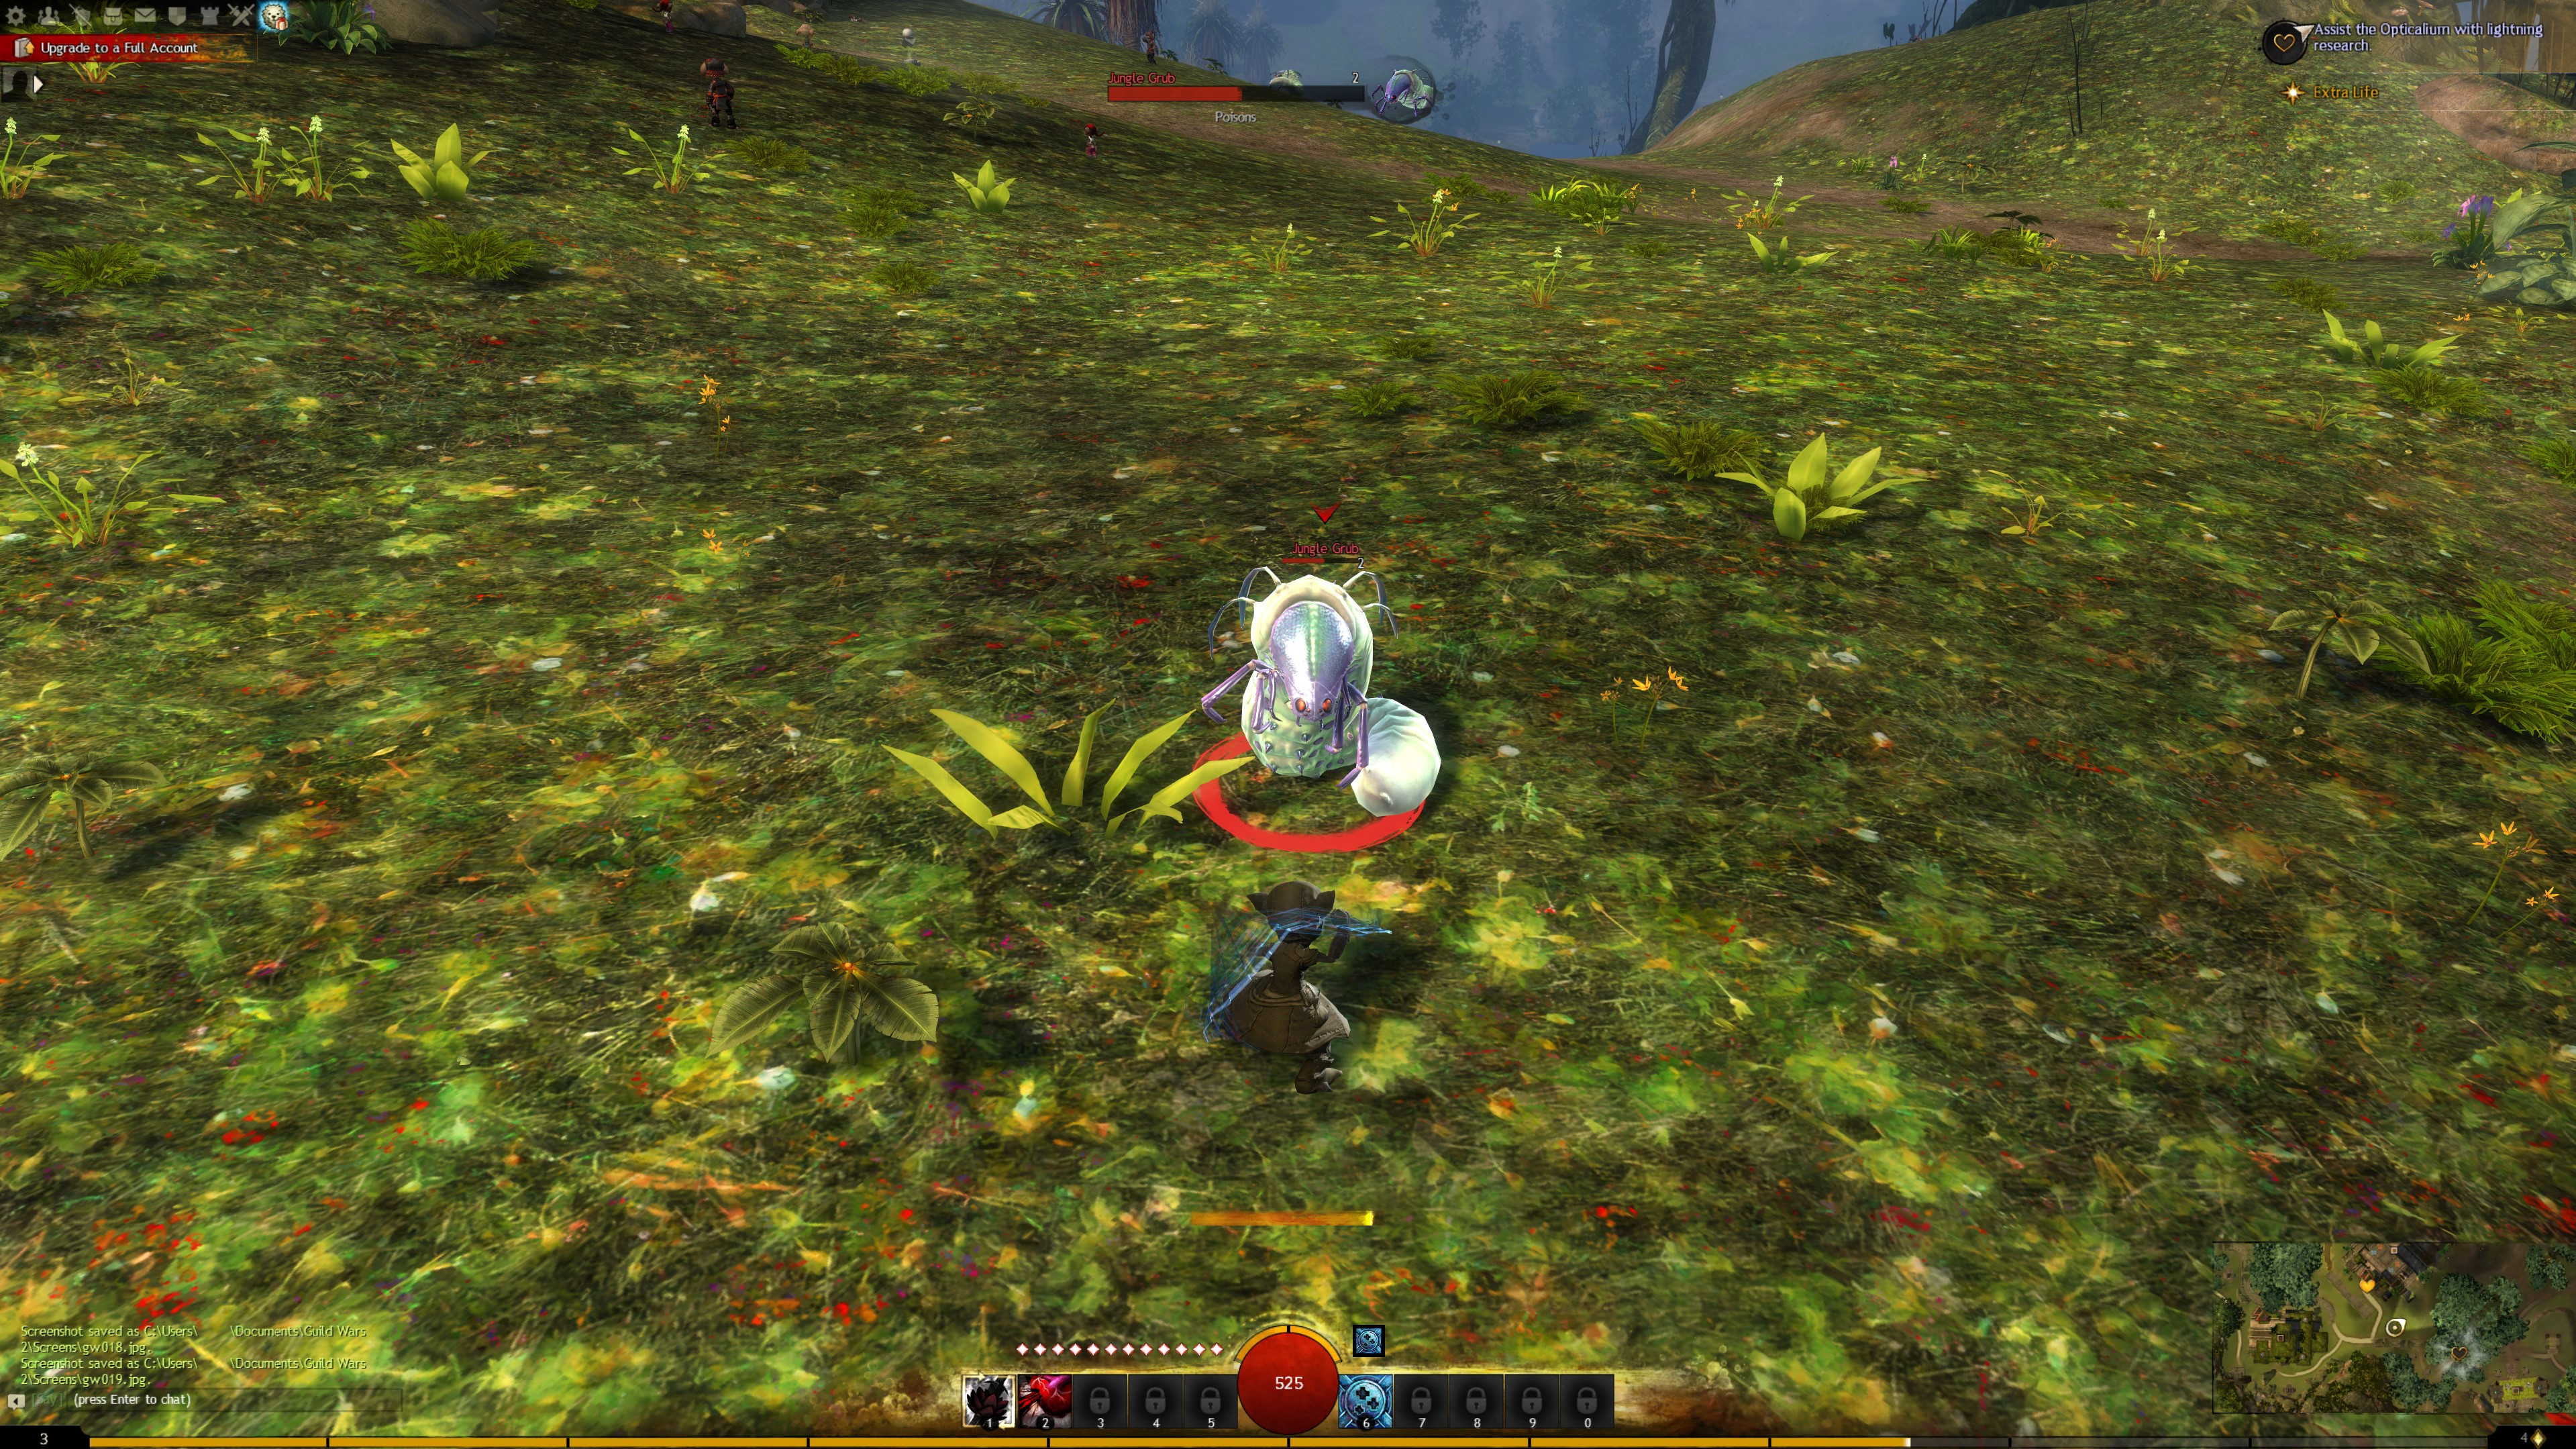 Quest System in Guild Wars 2